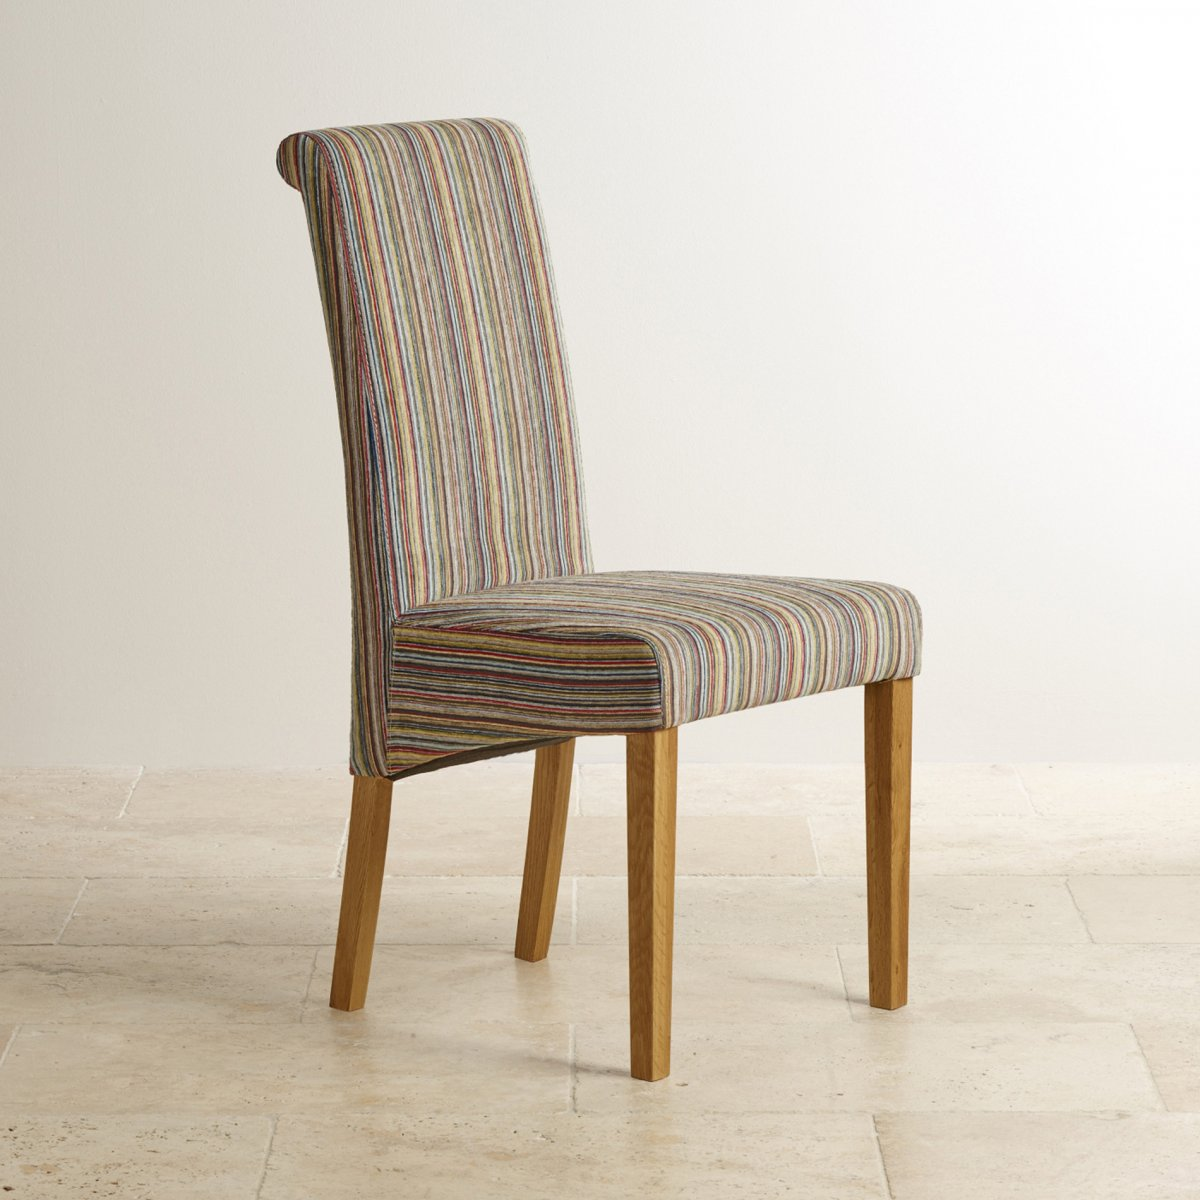 Striped Dining Room Chairs: Scroll Back Dining Chair In Striped Multicoloured Fabric